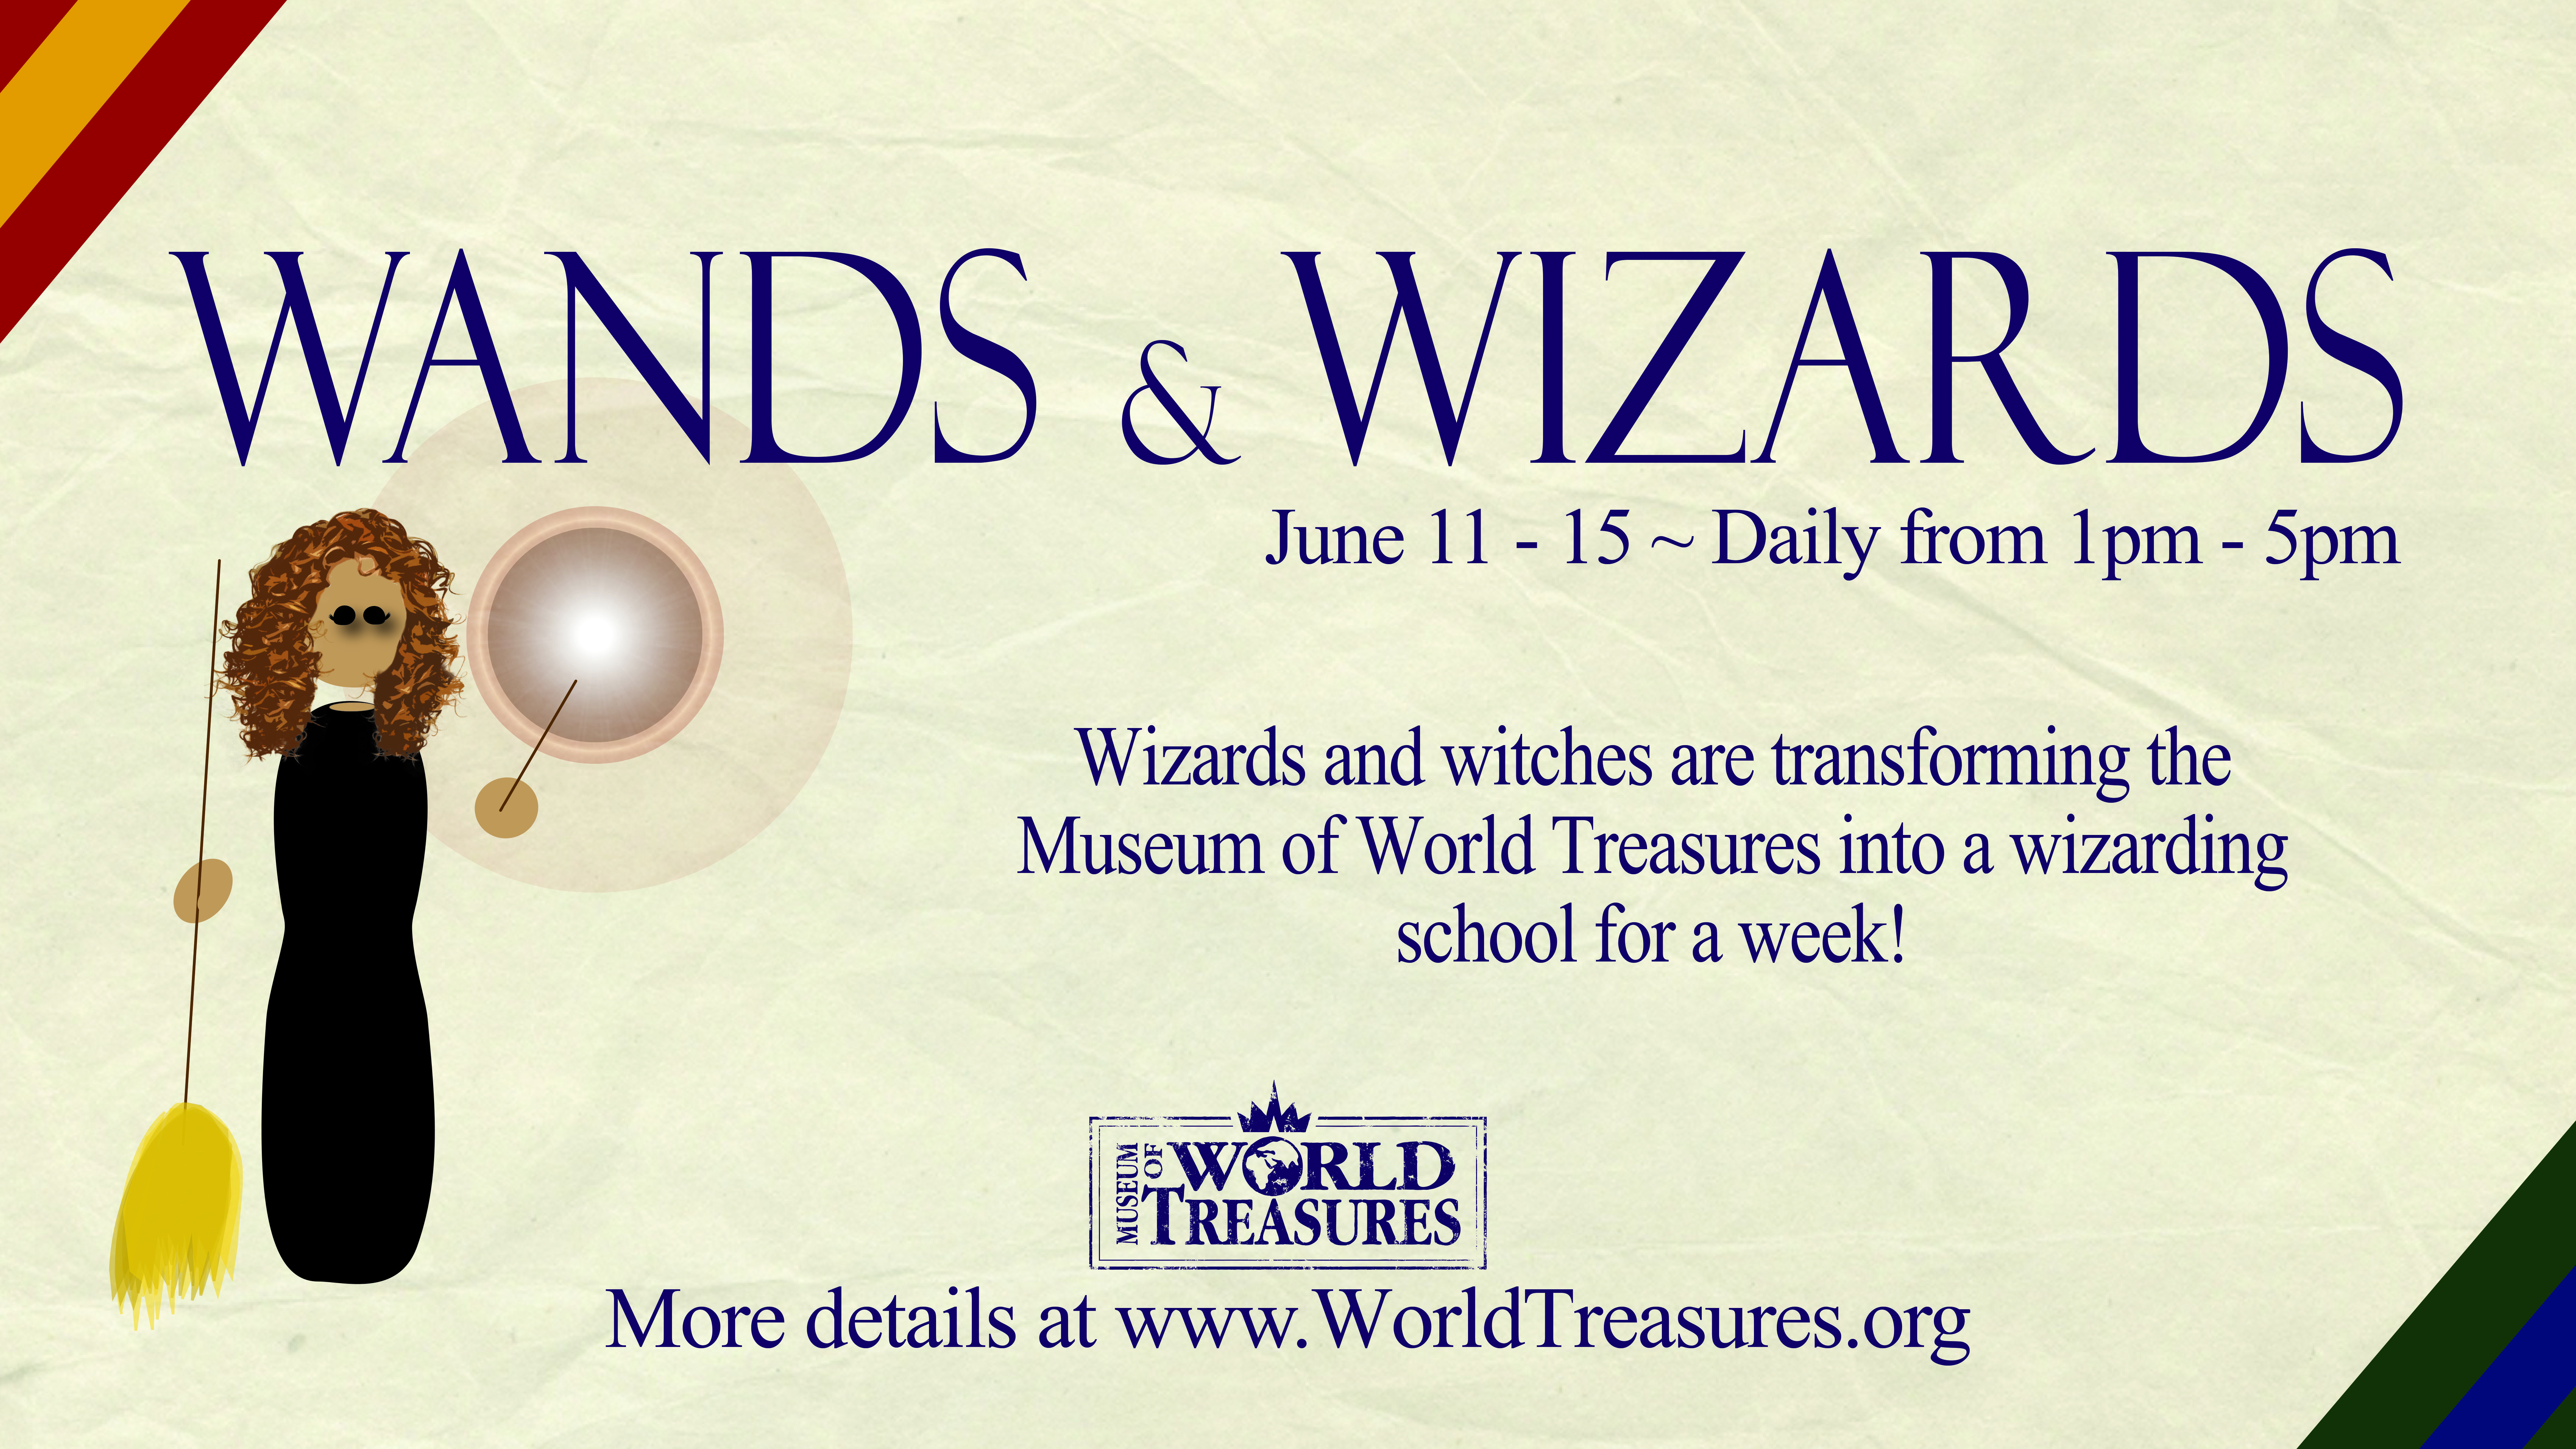 Wands_and_Wizards_FB_image.jpg